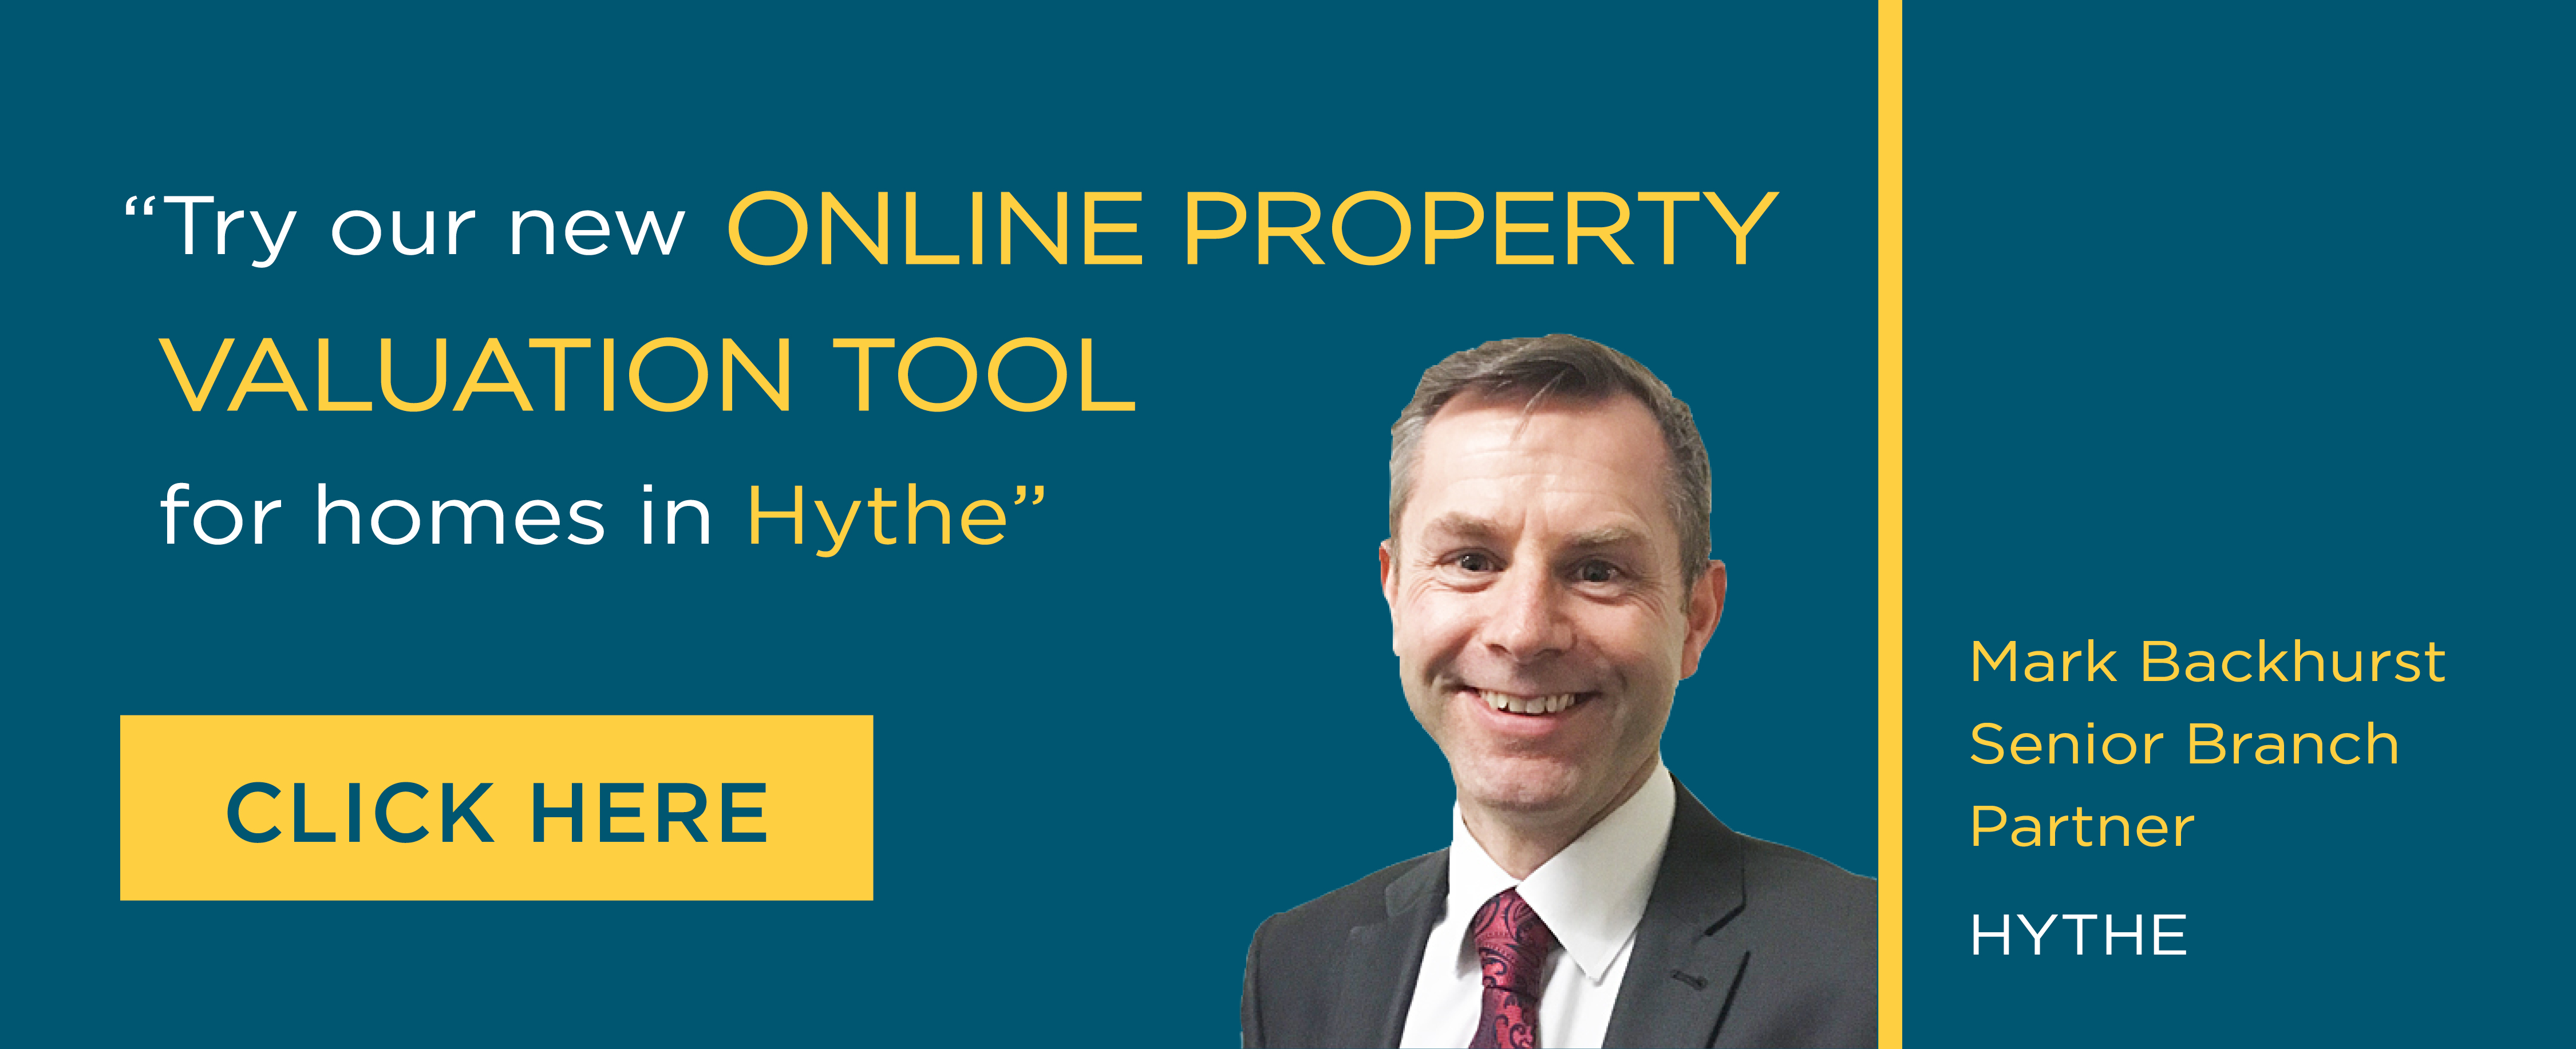 Online Valuation Tool website banner Hythe